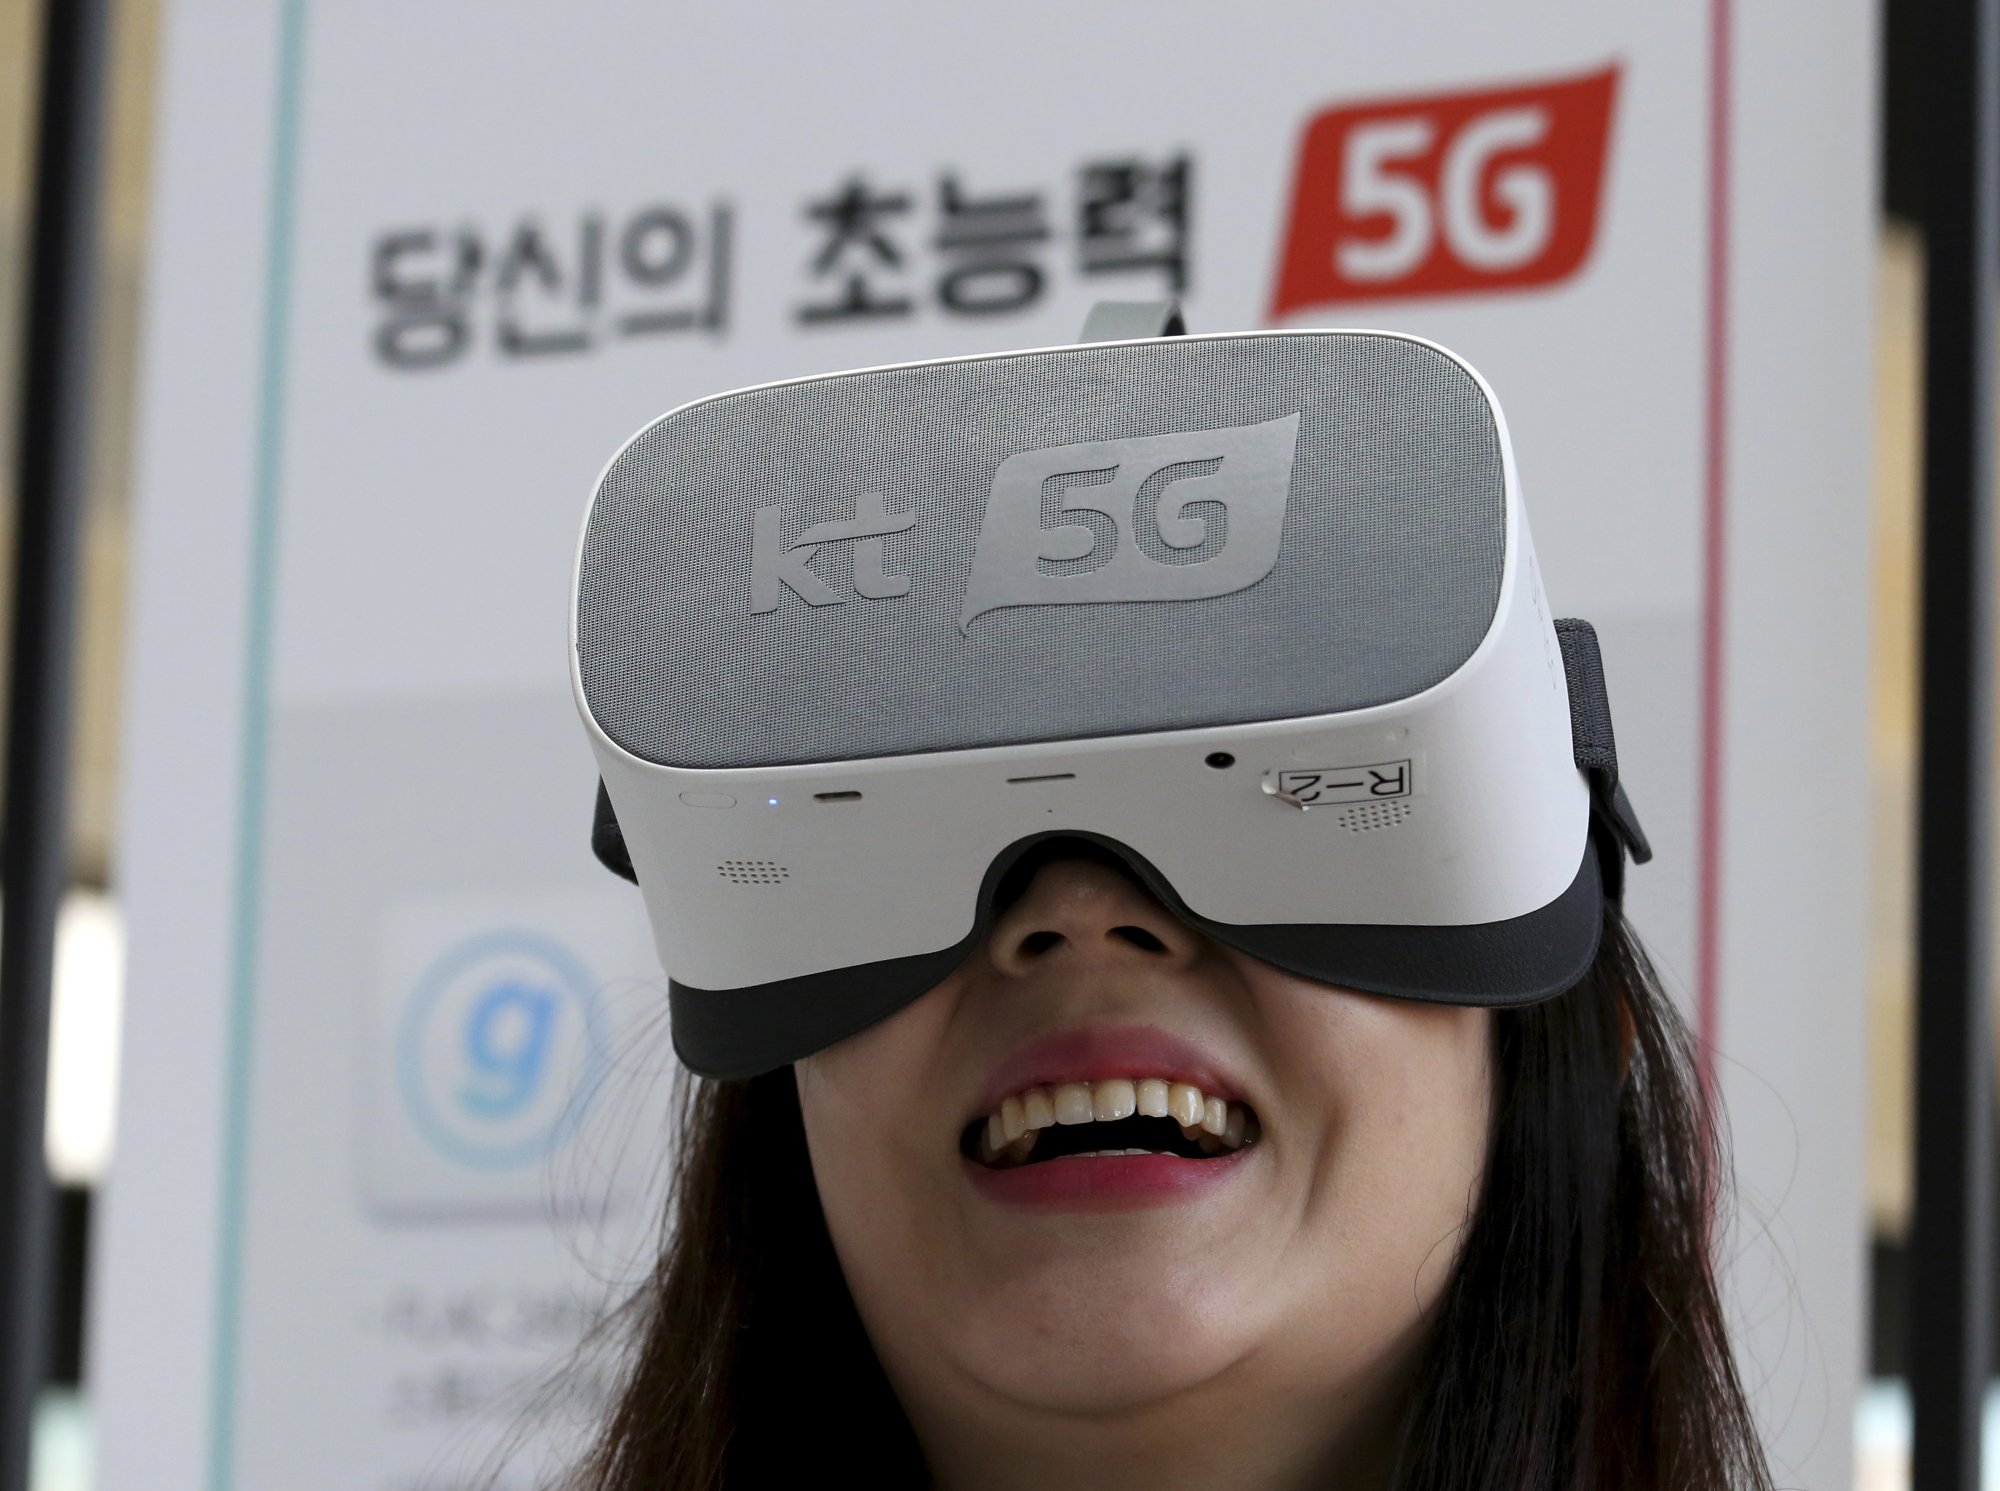 South Korea launches 5G smartphone networks ahead of schedule